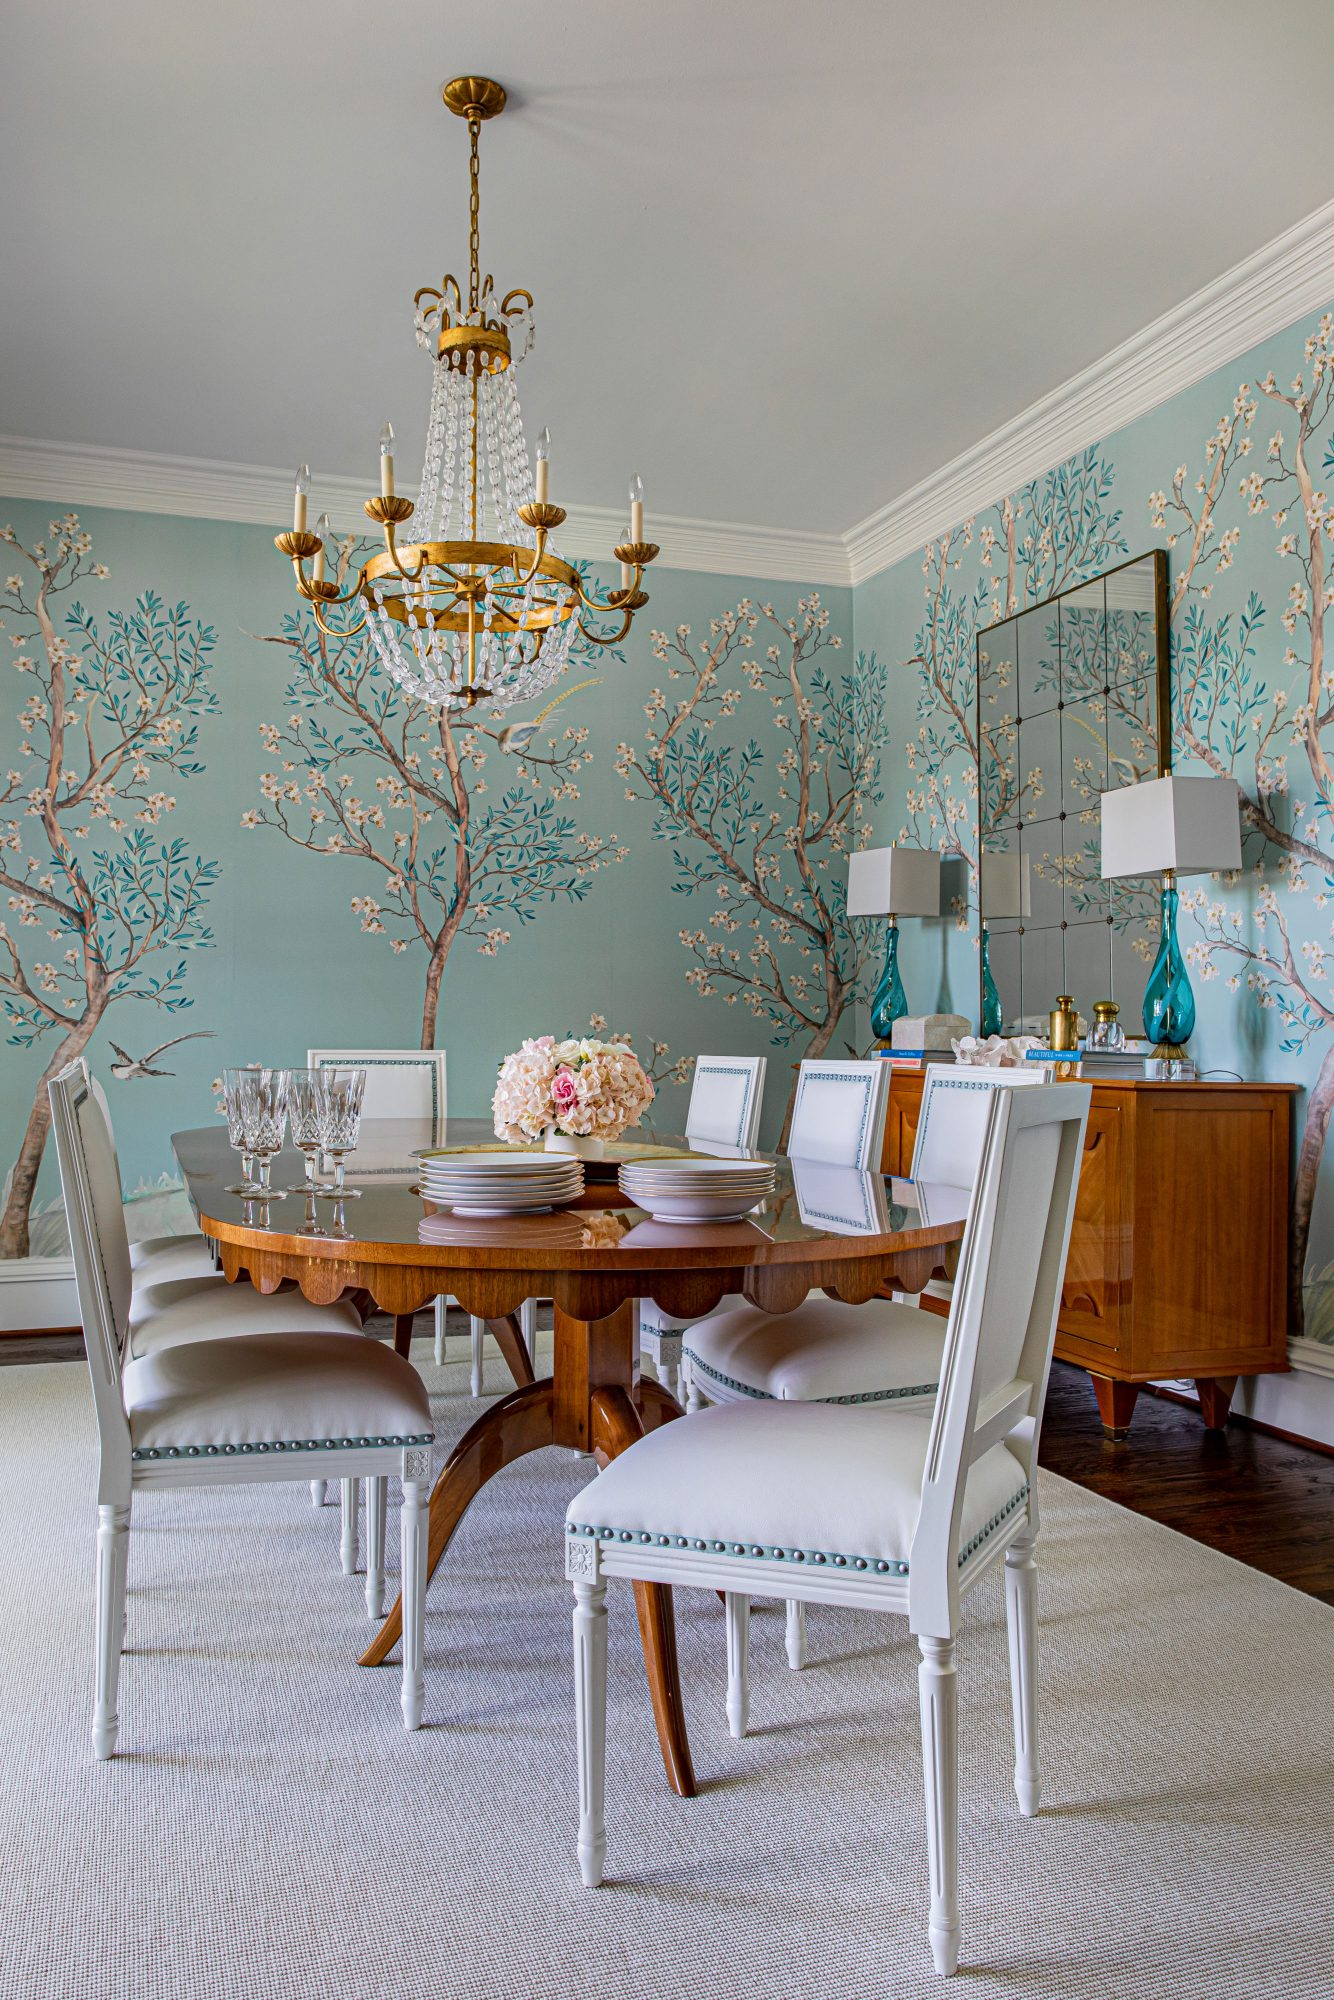 Dining Room with Oval Table, Blue Floral Mural, and Gold Crystal Chandelier